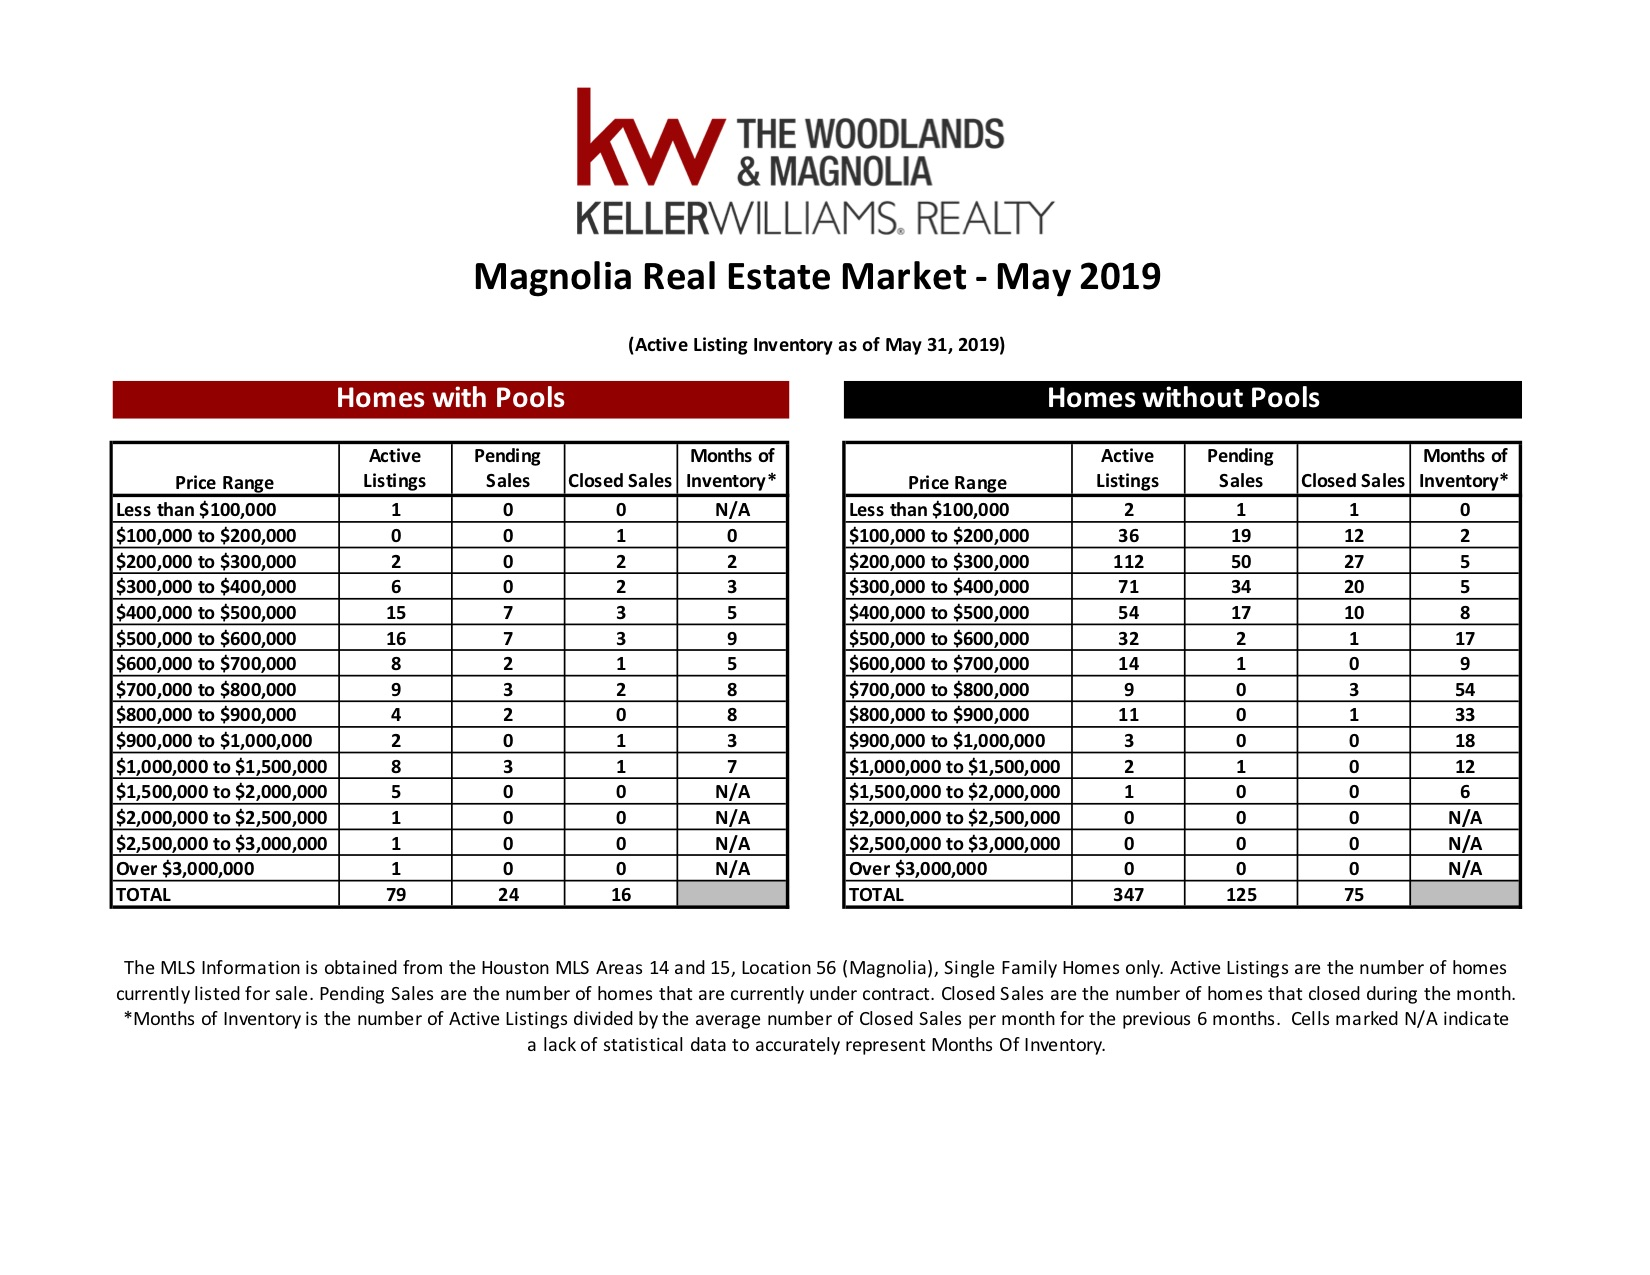 , May 2019 MarketWatch Report – Magnolia, KW Woodlands